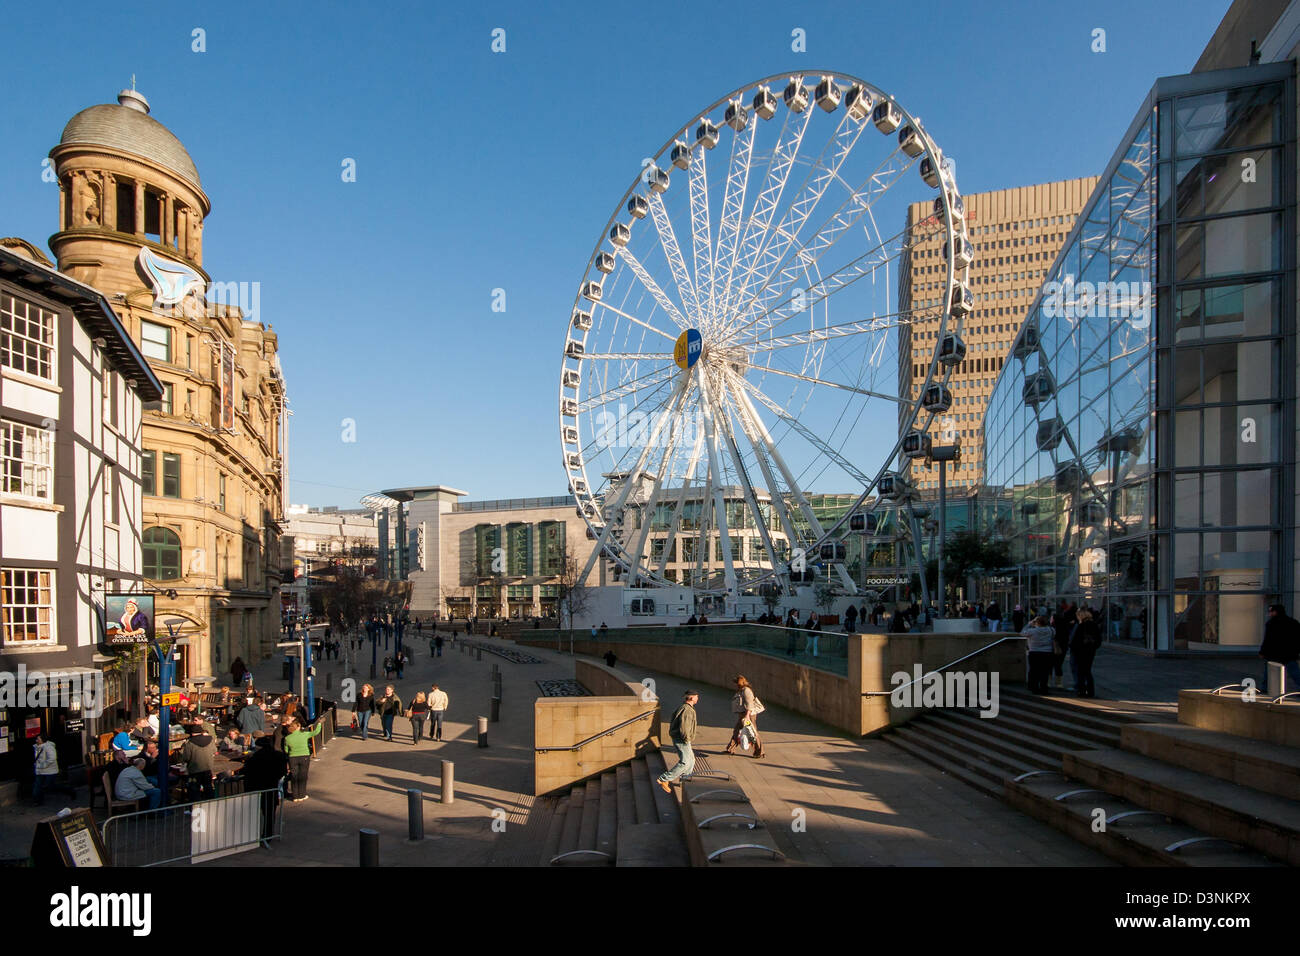 Exchange square in Manchester - Stock Image